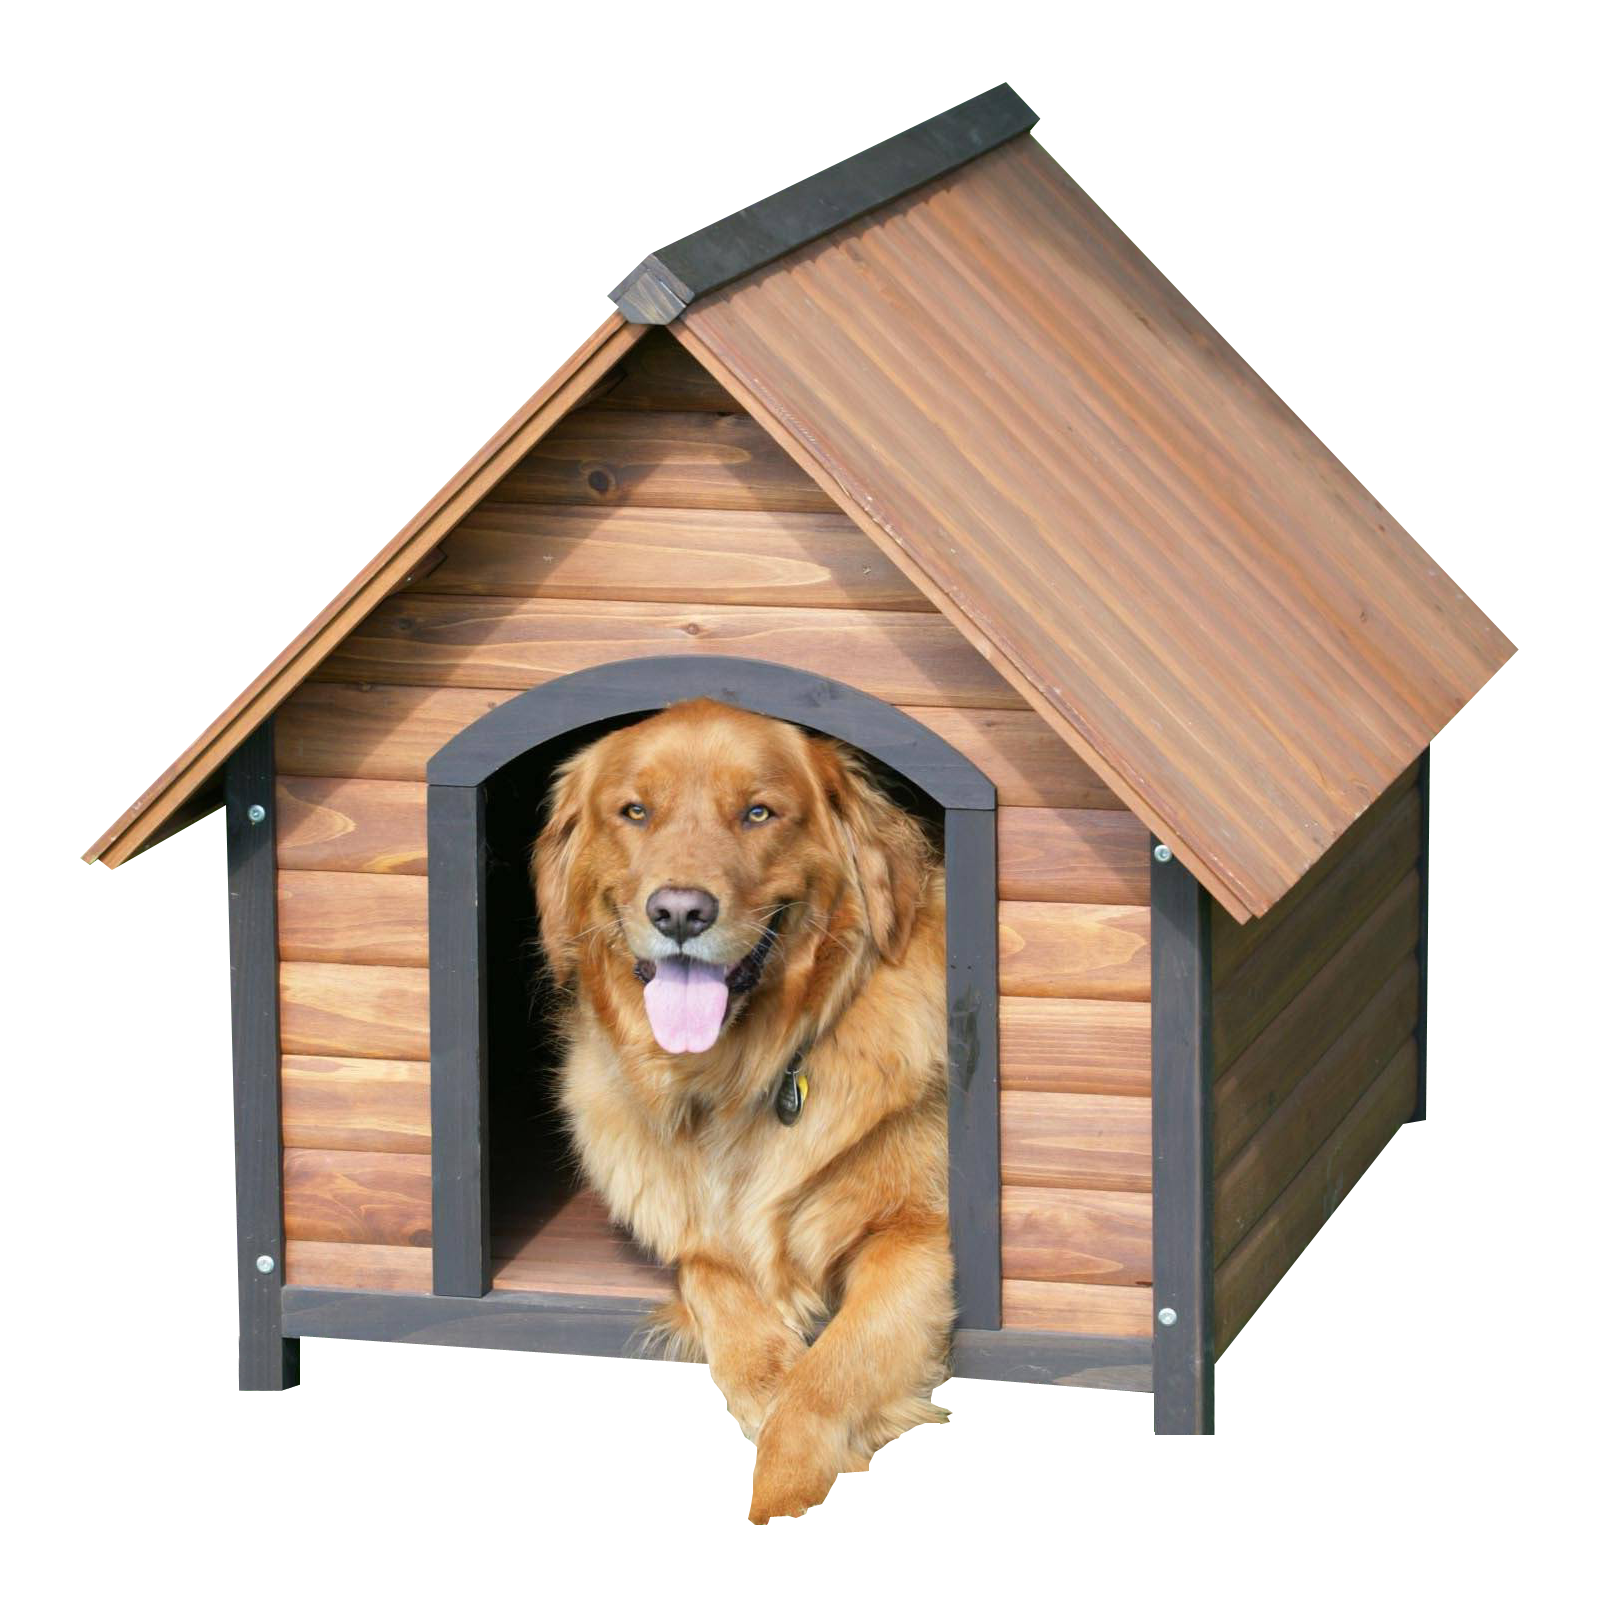 Doghouse clipart transparent. Dog house png image